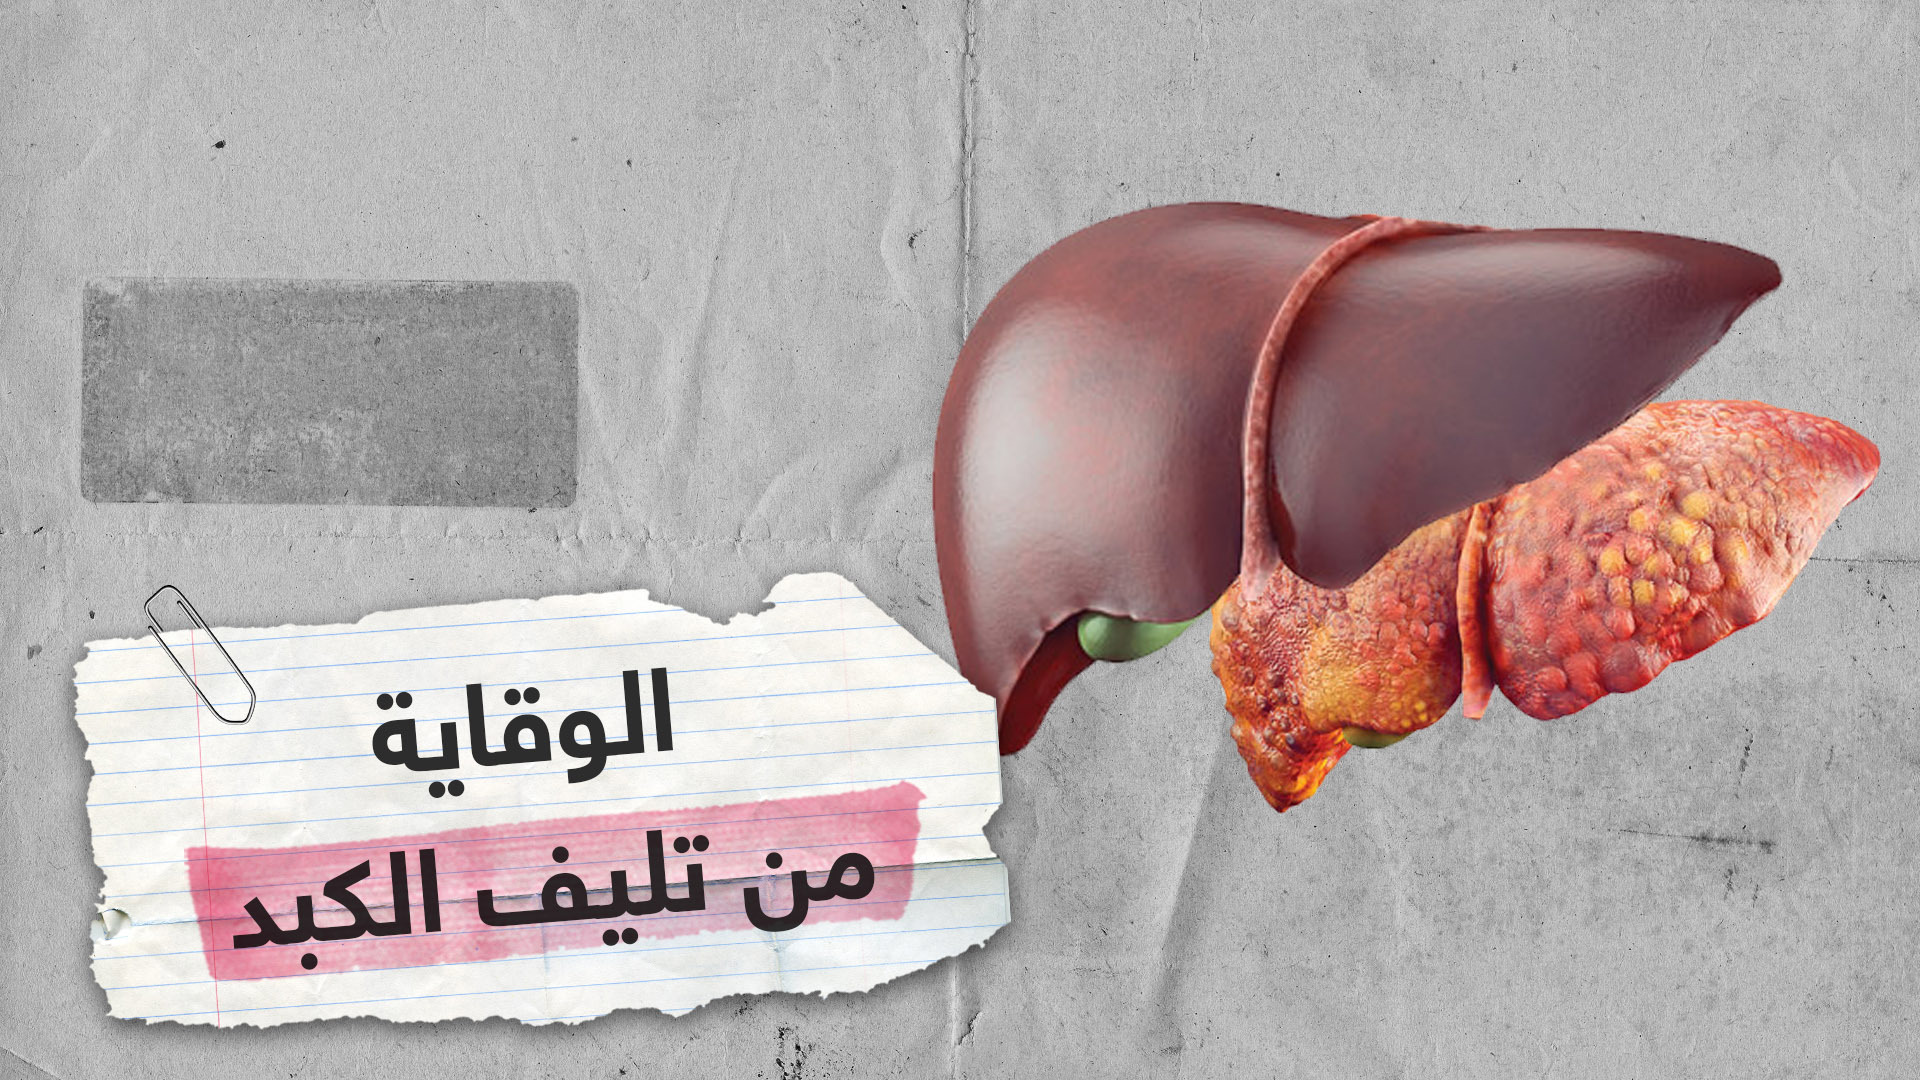 Important information for preventing cirrhosis